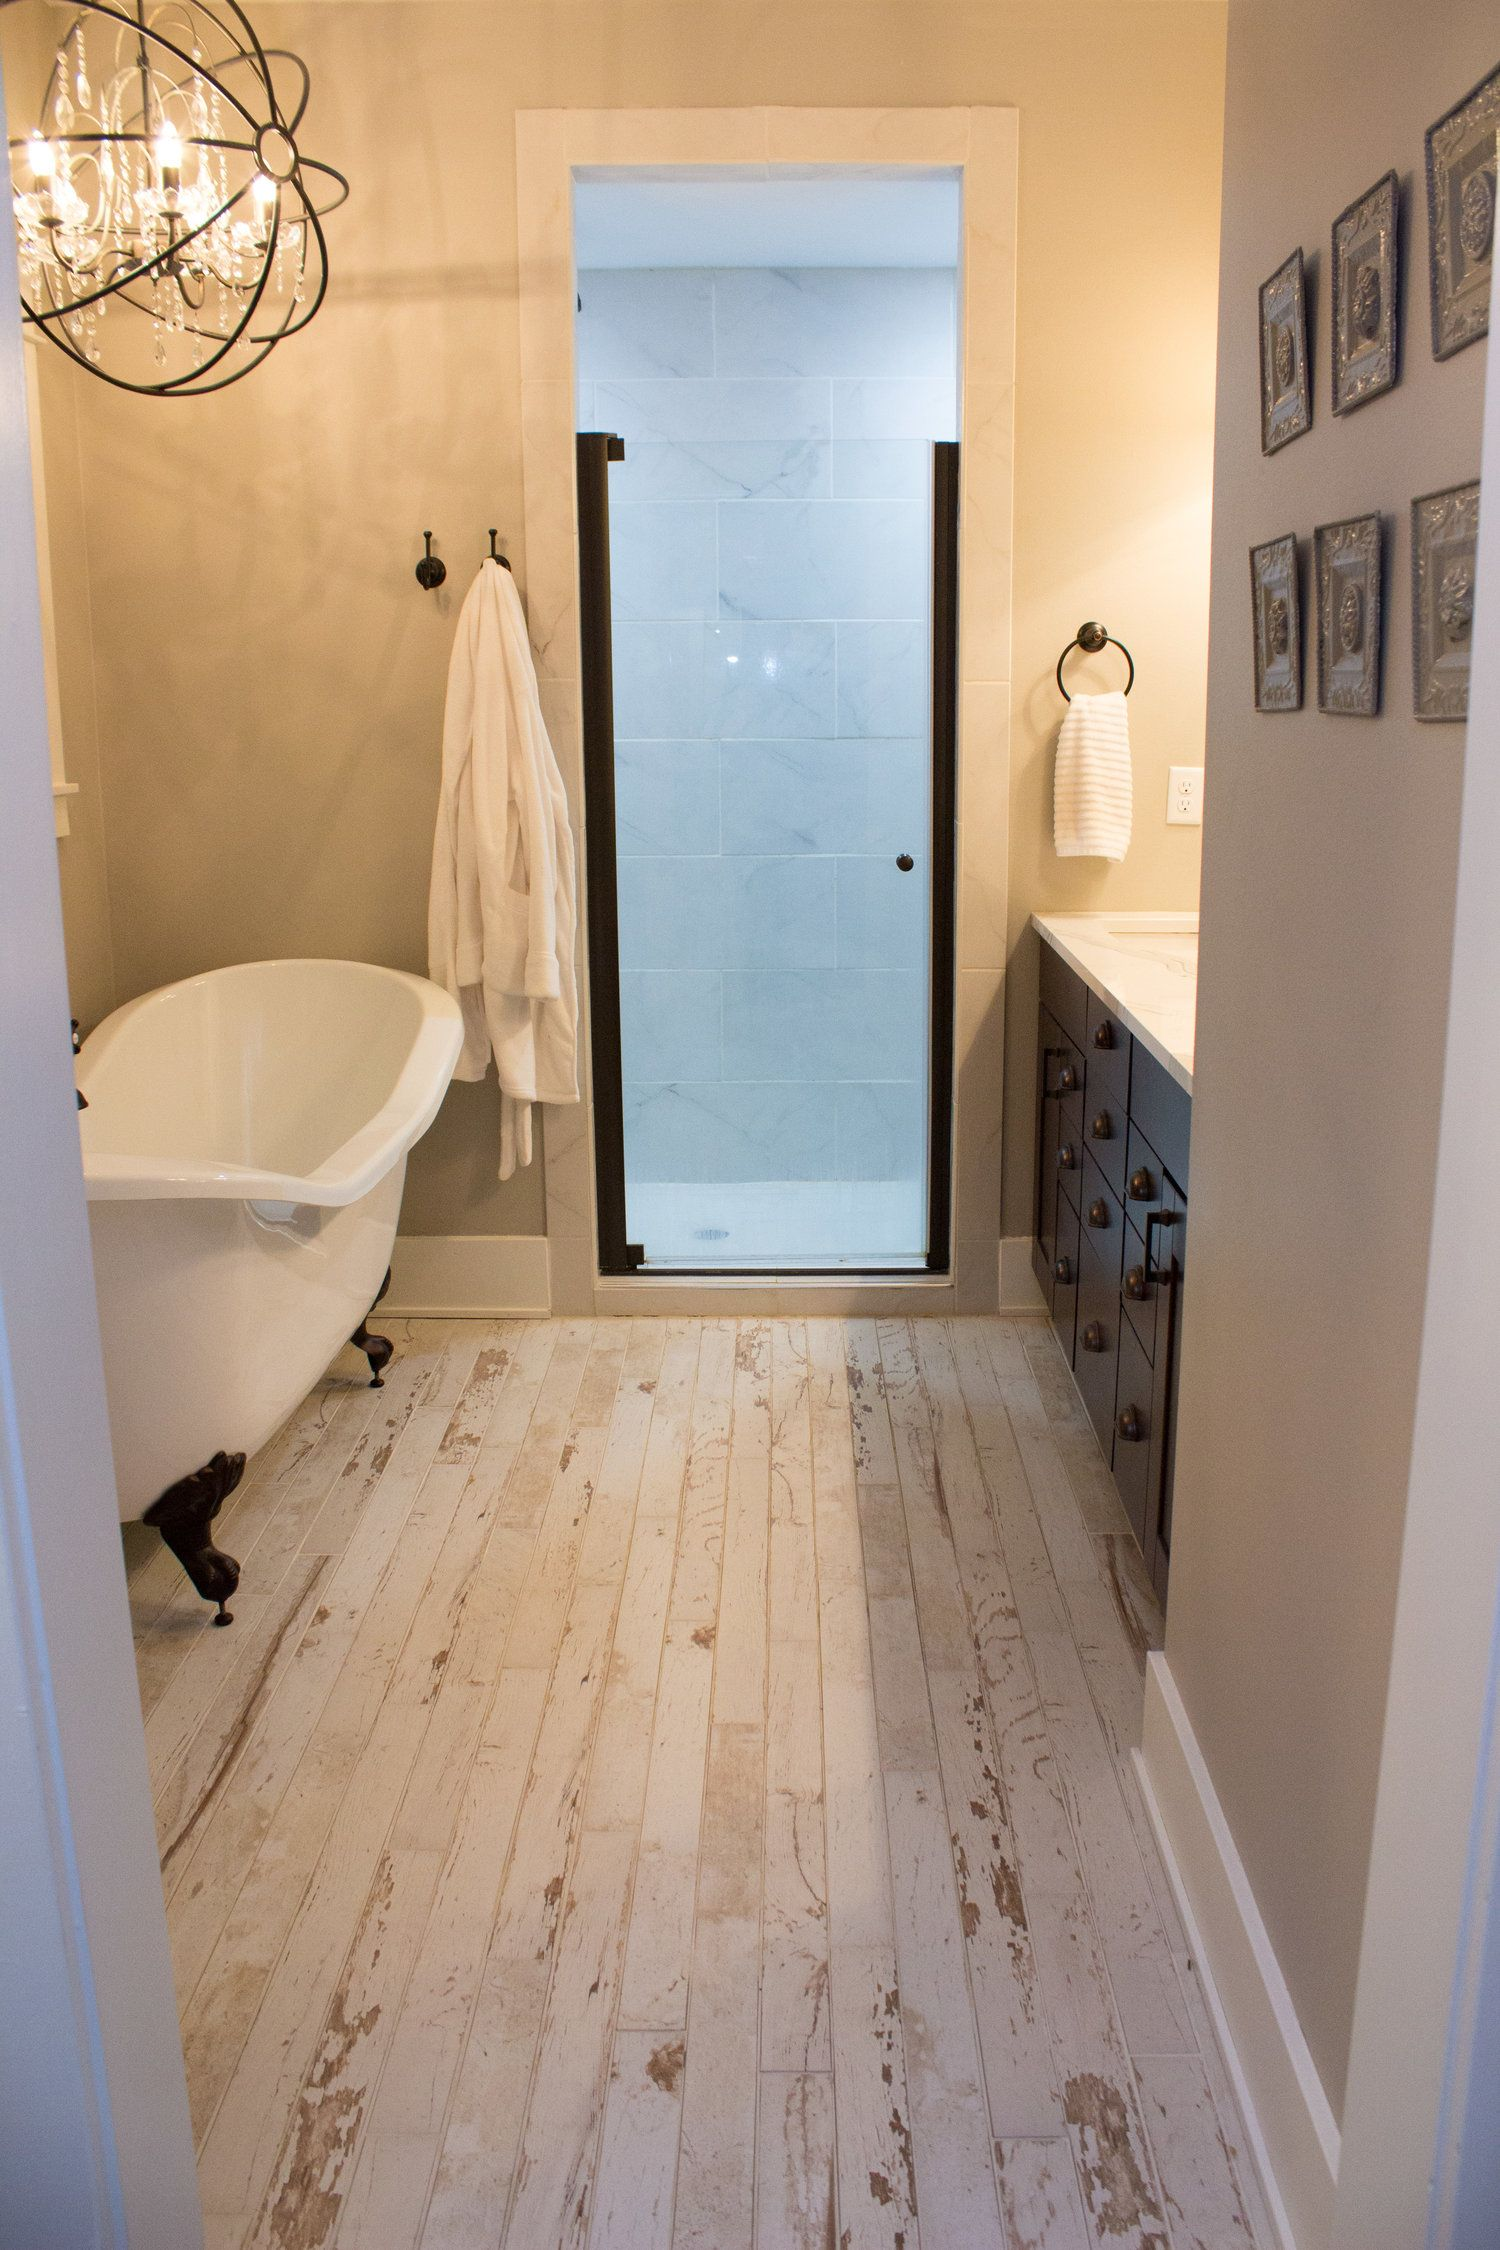 Rustic Bathroom In A New Home. Whitewashed Flooring With A